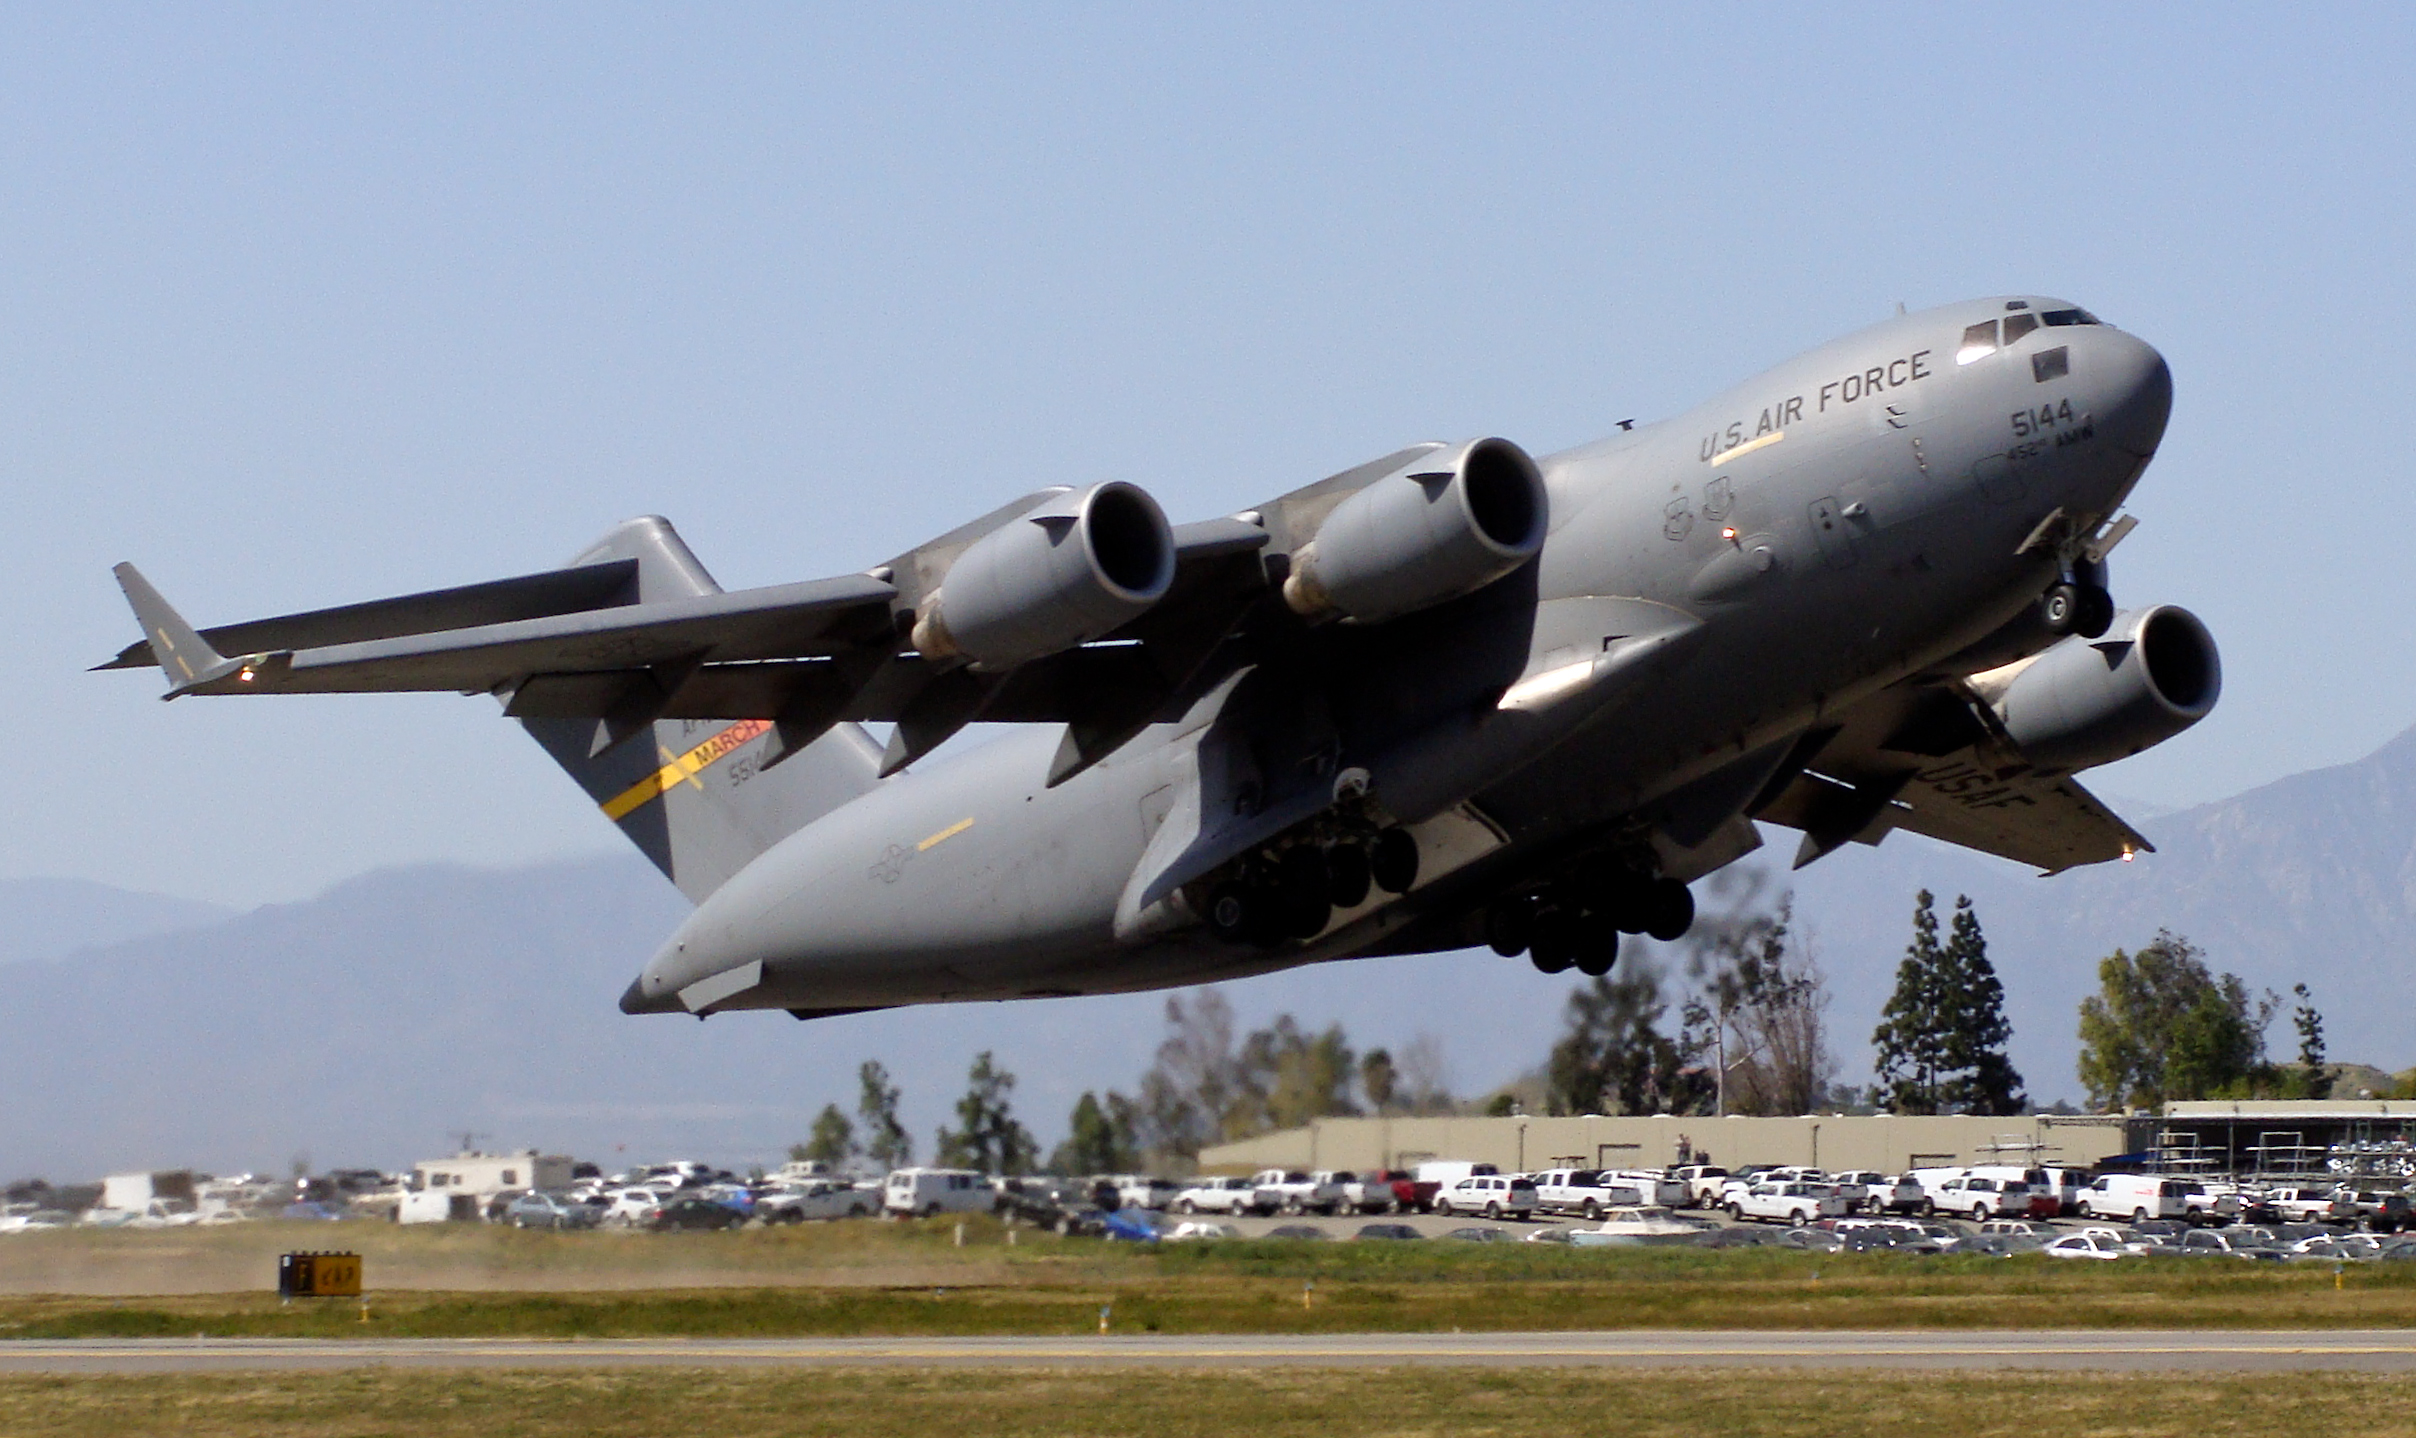 833rd aero squadron - A C 17 Globemaster Iii From The 452d Air Mobility Wing At Near By Riverside Municipal Airport